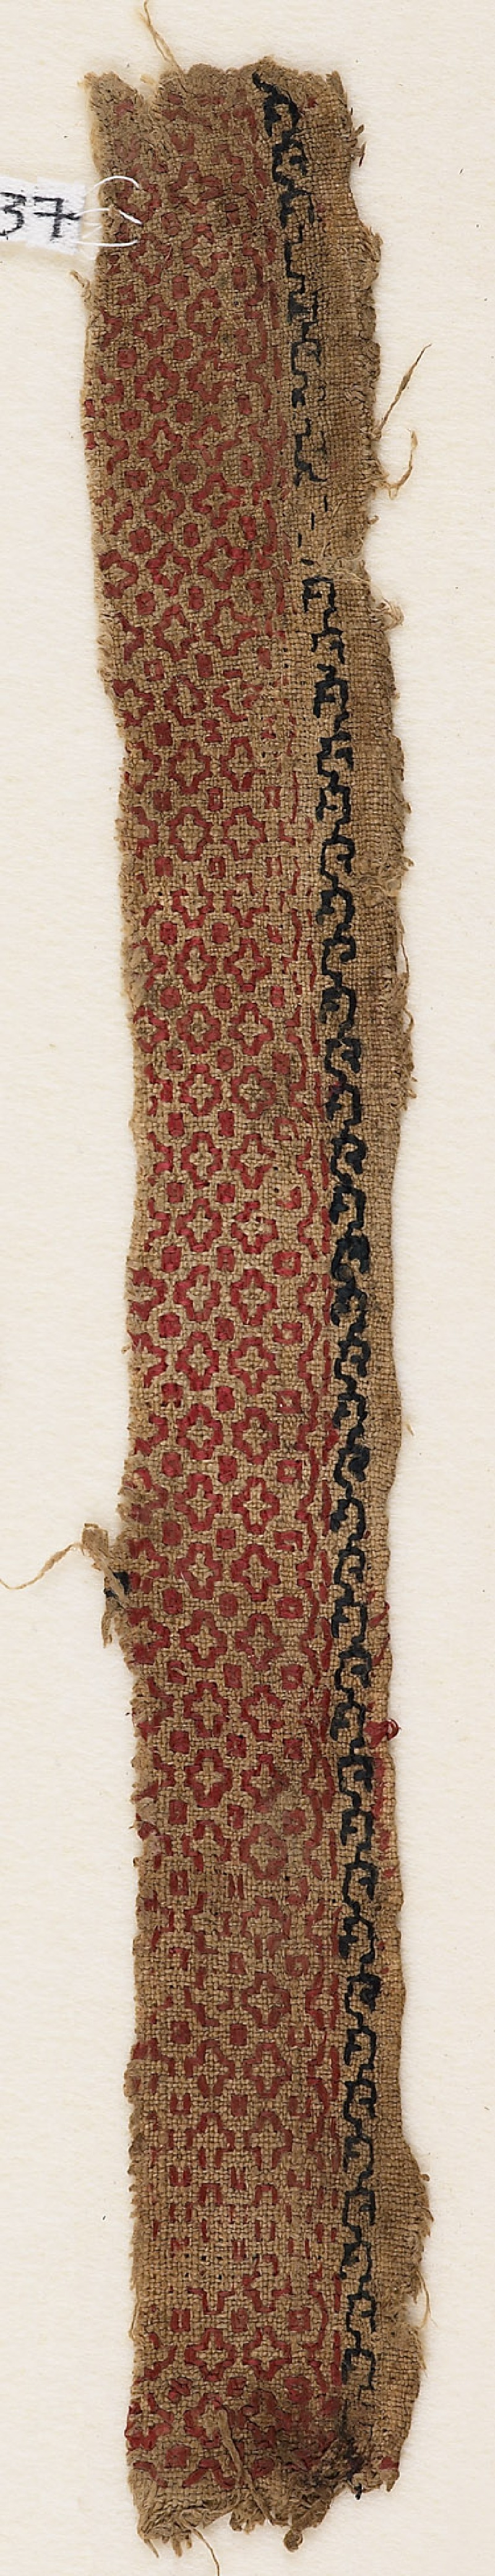 Textile fragment with cross-shaped diamonds and dots